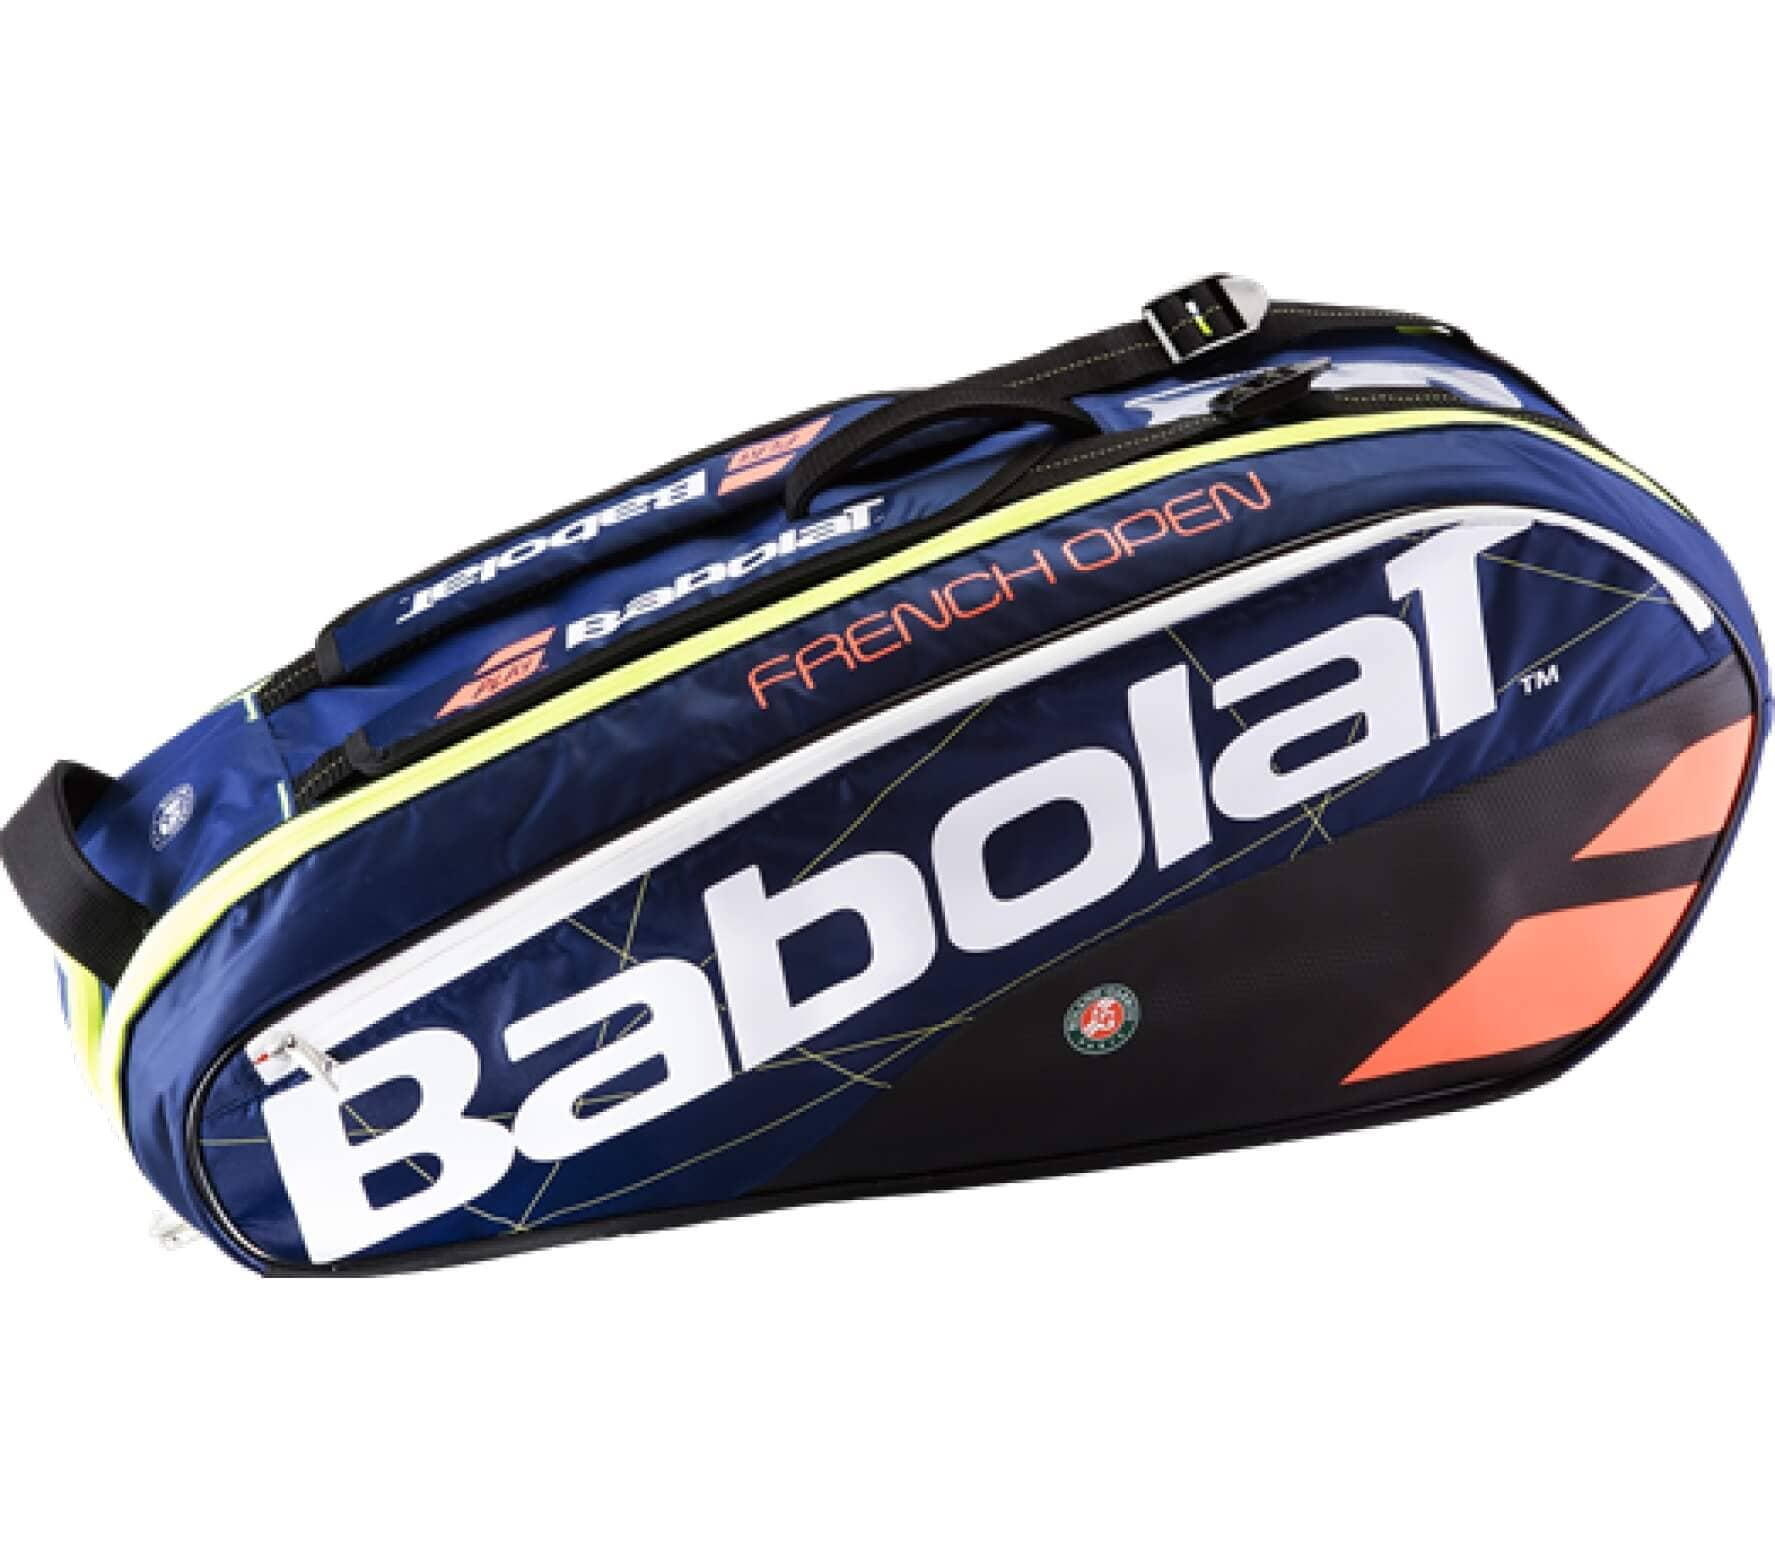 Babolat - Racket Holder X6 Pure French Open Tennistasche (blau/rot)